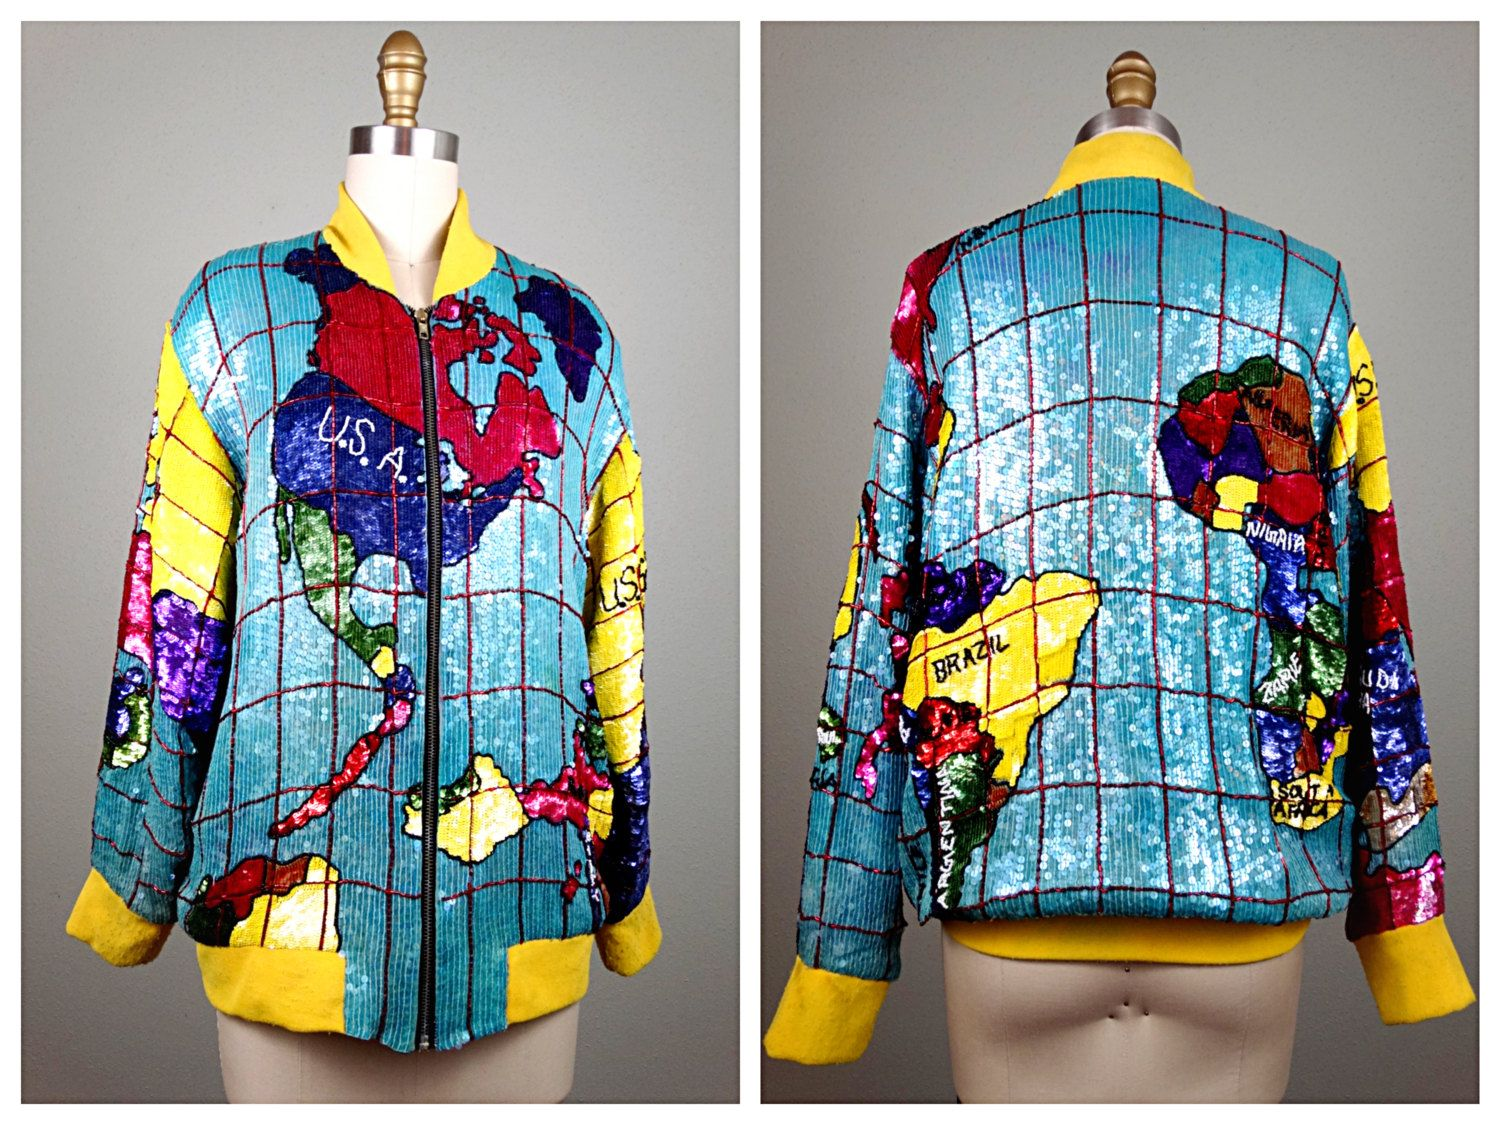 Reserved the world atlas sequin jacket global glam fully the world map sequin jacket 80s global glam fully sequined bomber jacket rare by braxae on etsy sequins 80s vintage bomber gumiabroncs Choice Image